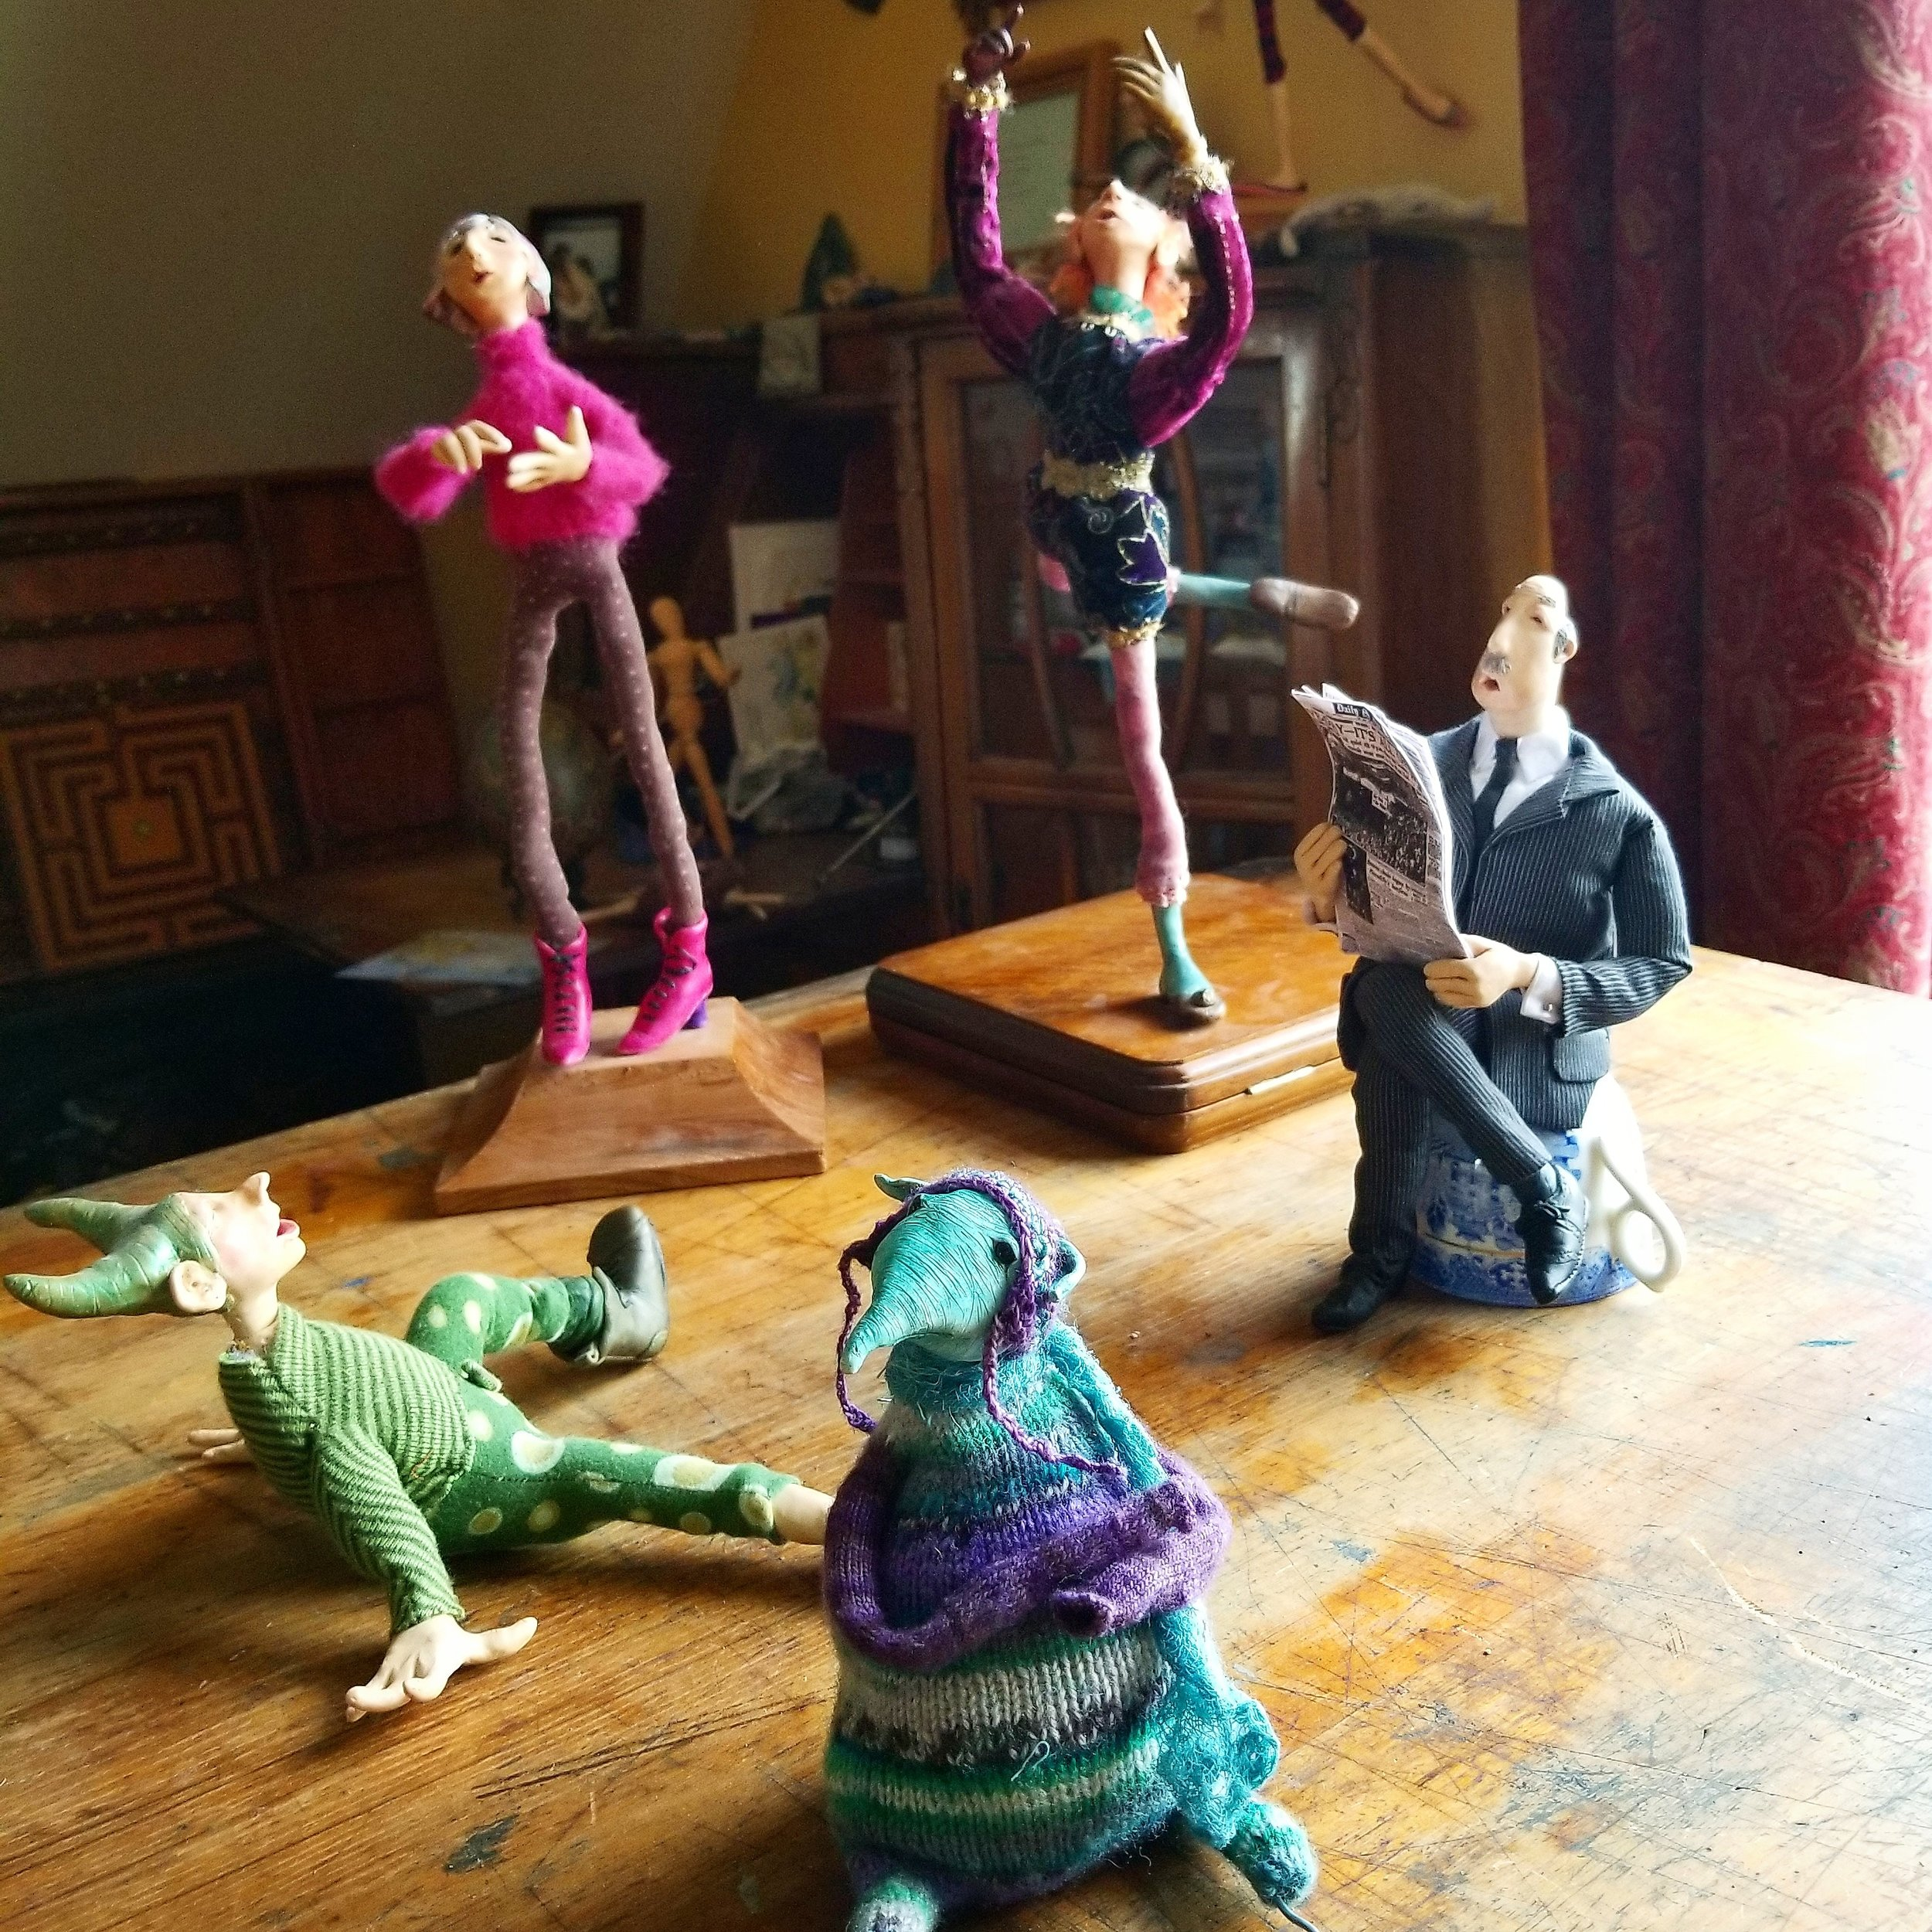 A few examples of my sculptural figures.